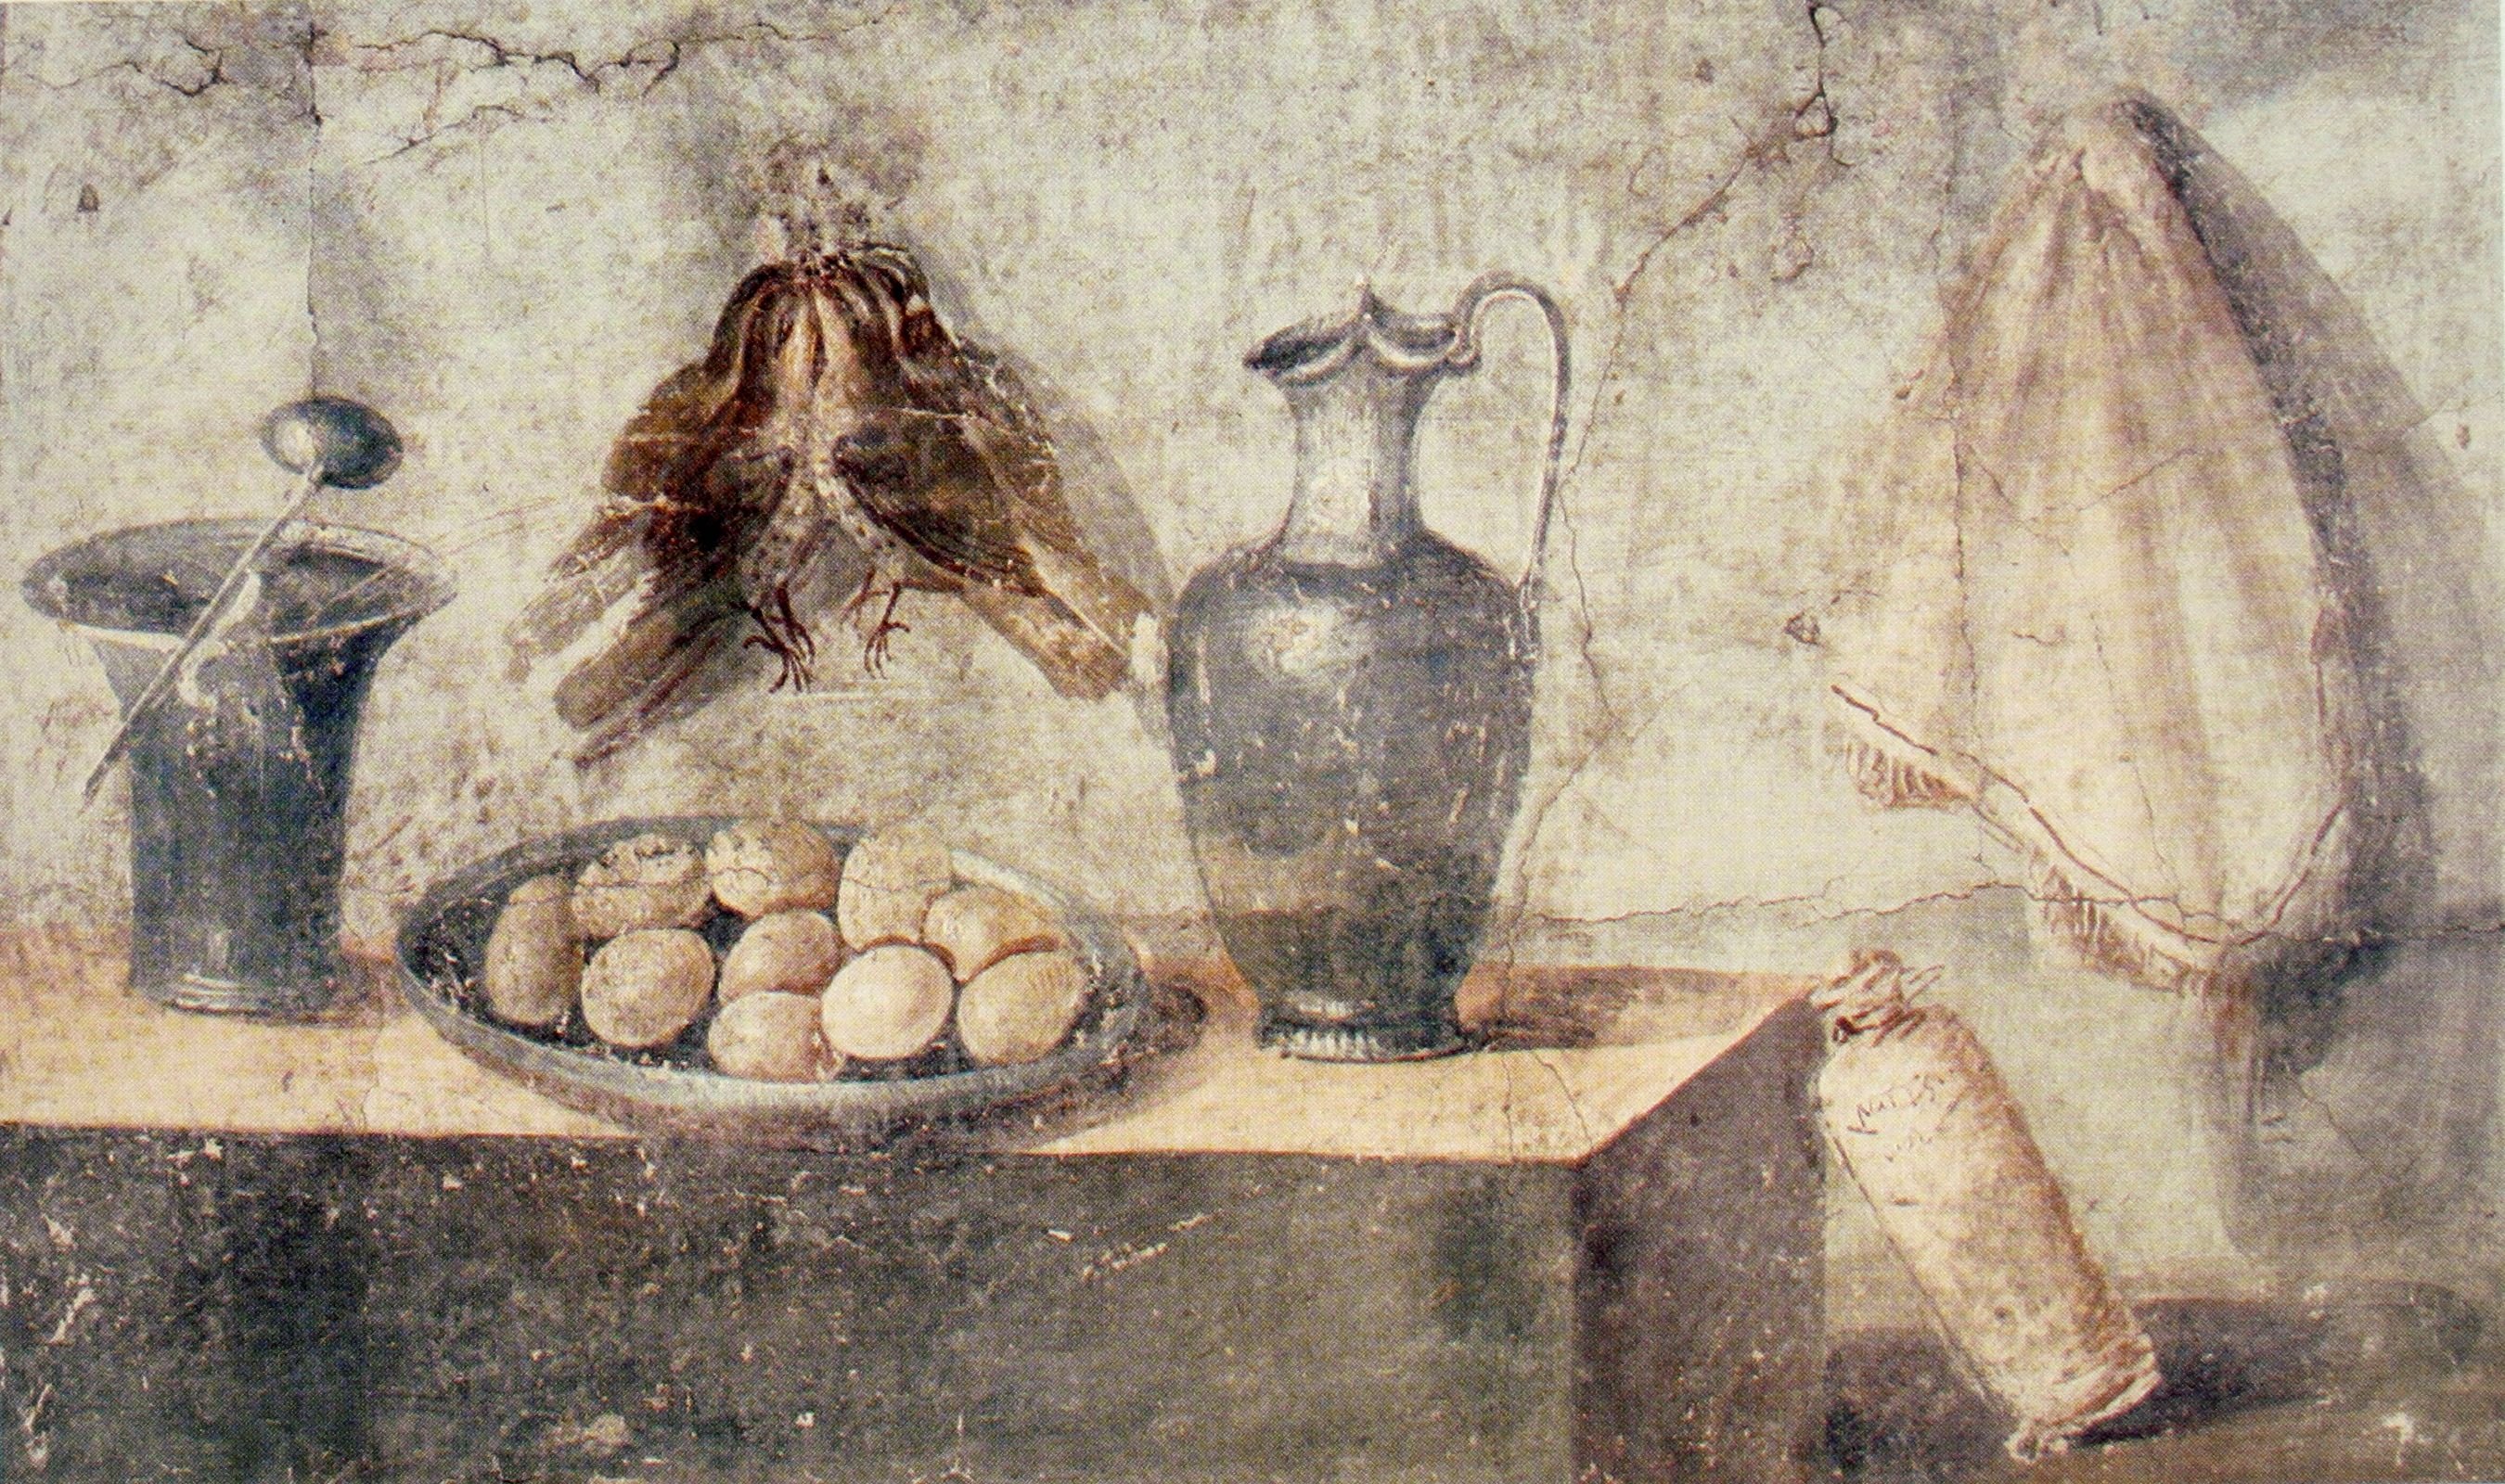 FileStill life with eggs birds and bronze dishes Pompeiijpg  Wikimedia Commons